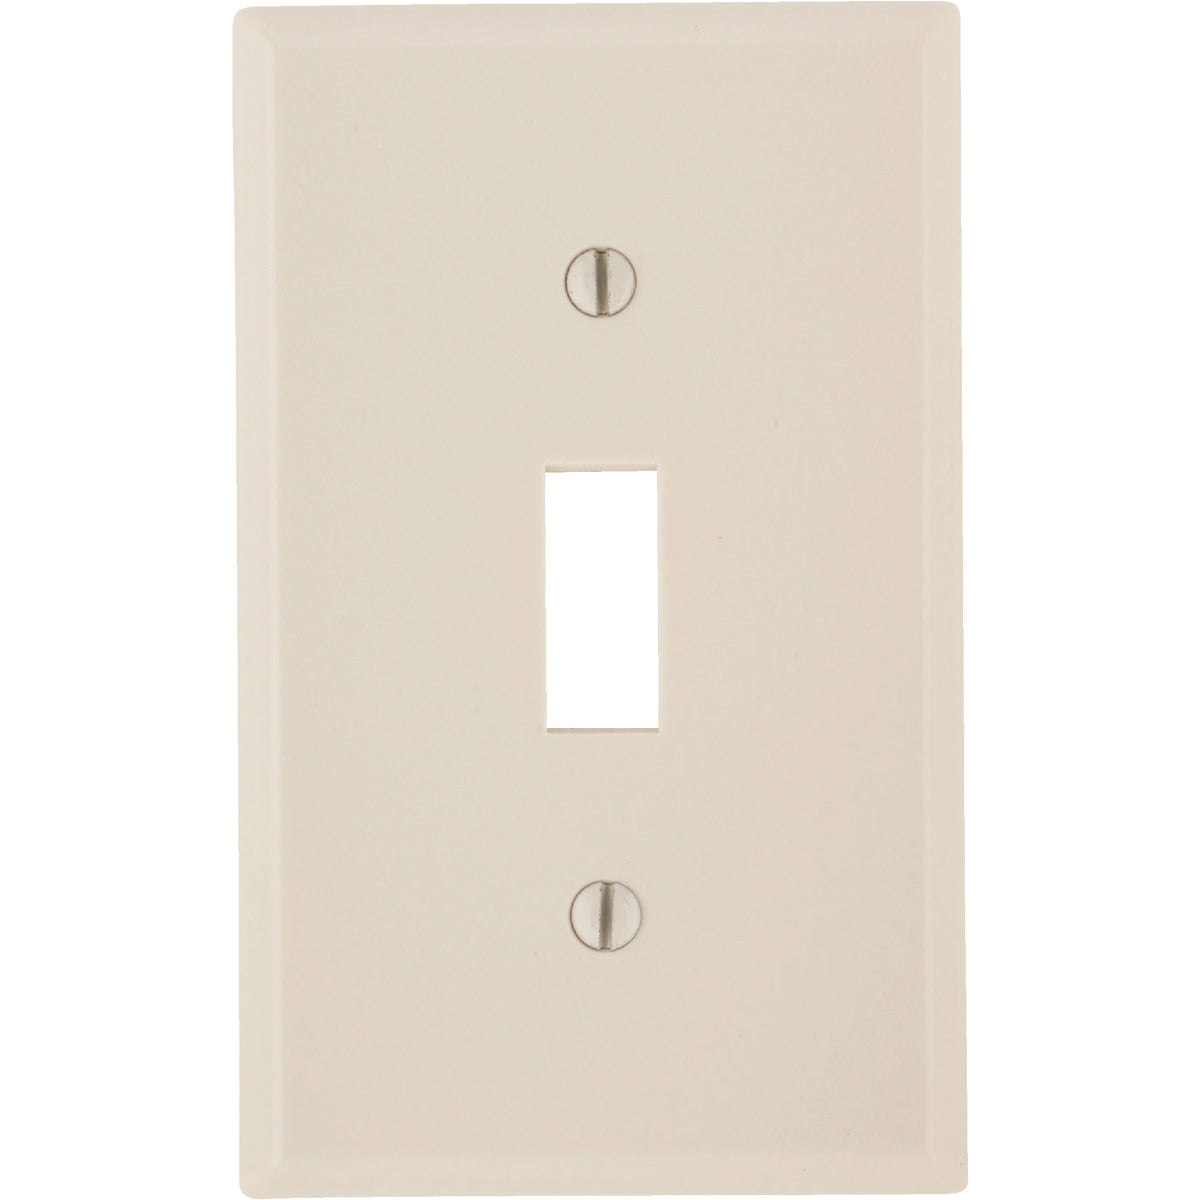 LT ALM 1-TGL WALLPLATE - 010-78001 by Leviton Mfg Co